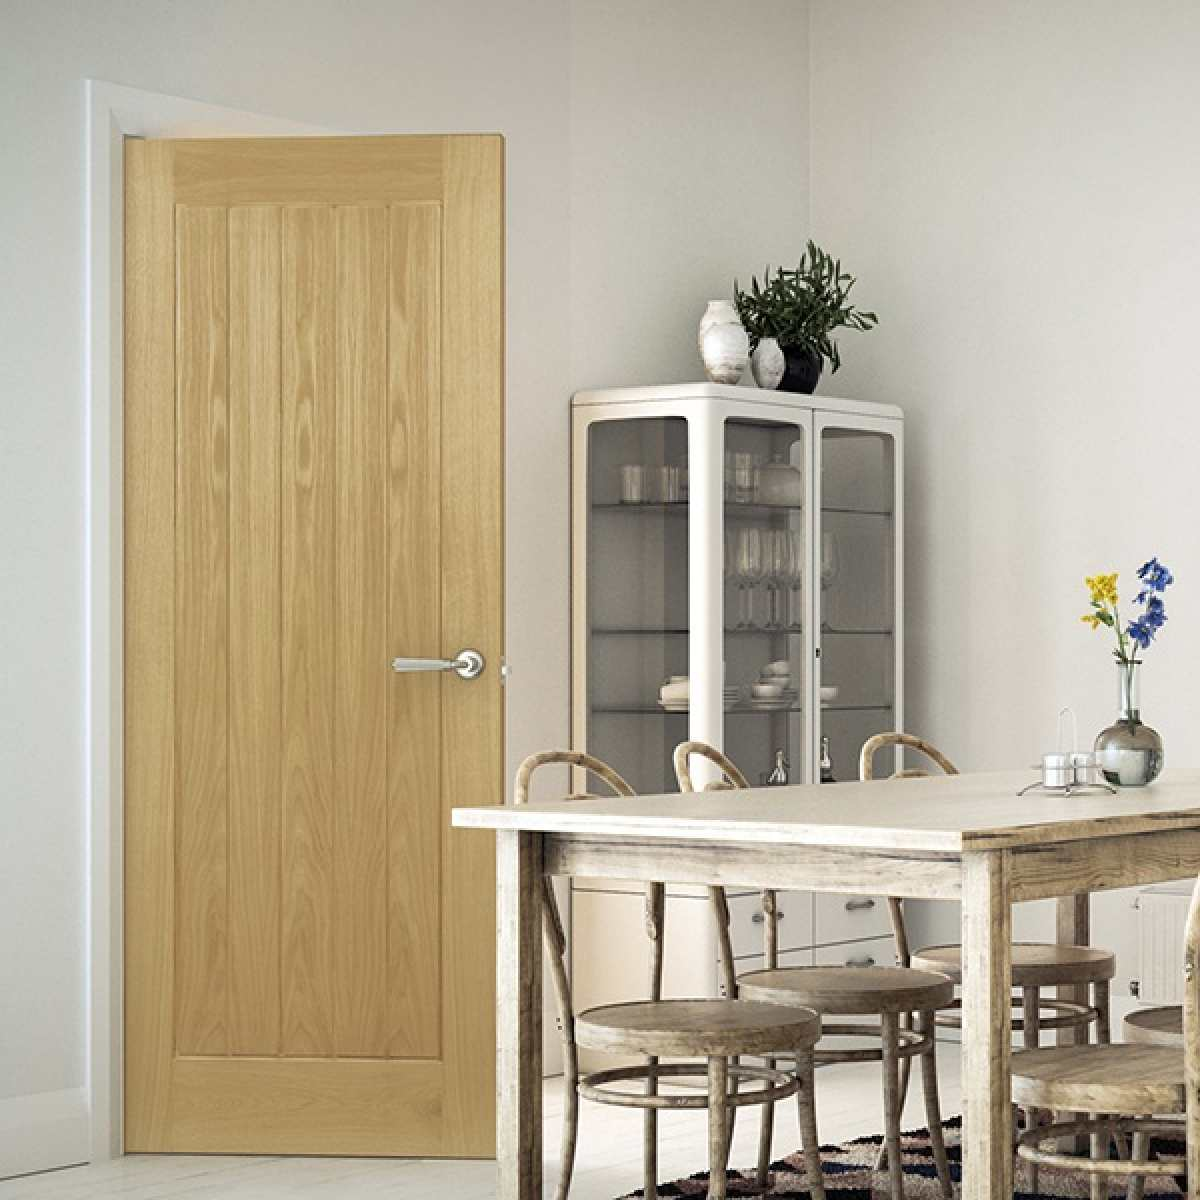 Ely oak lifestyle websters Image by Websters Timber